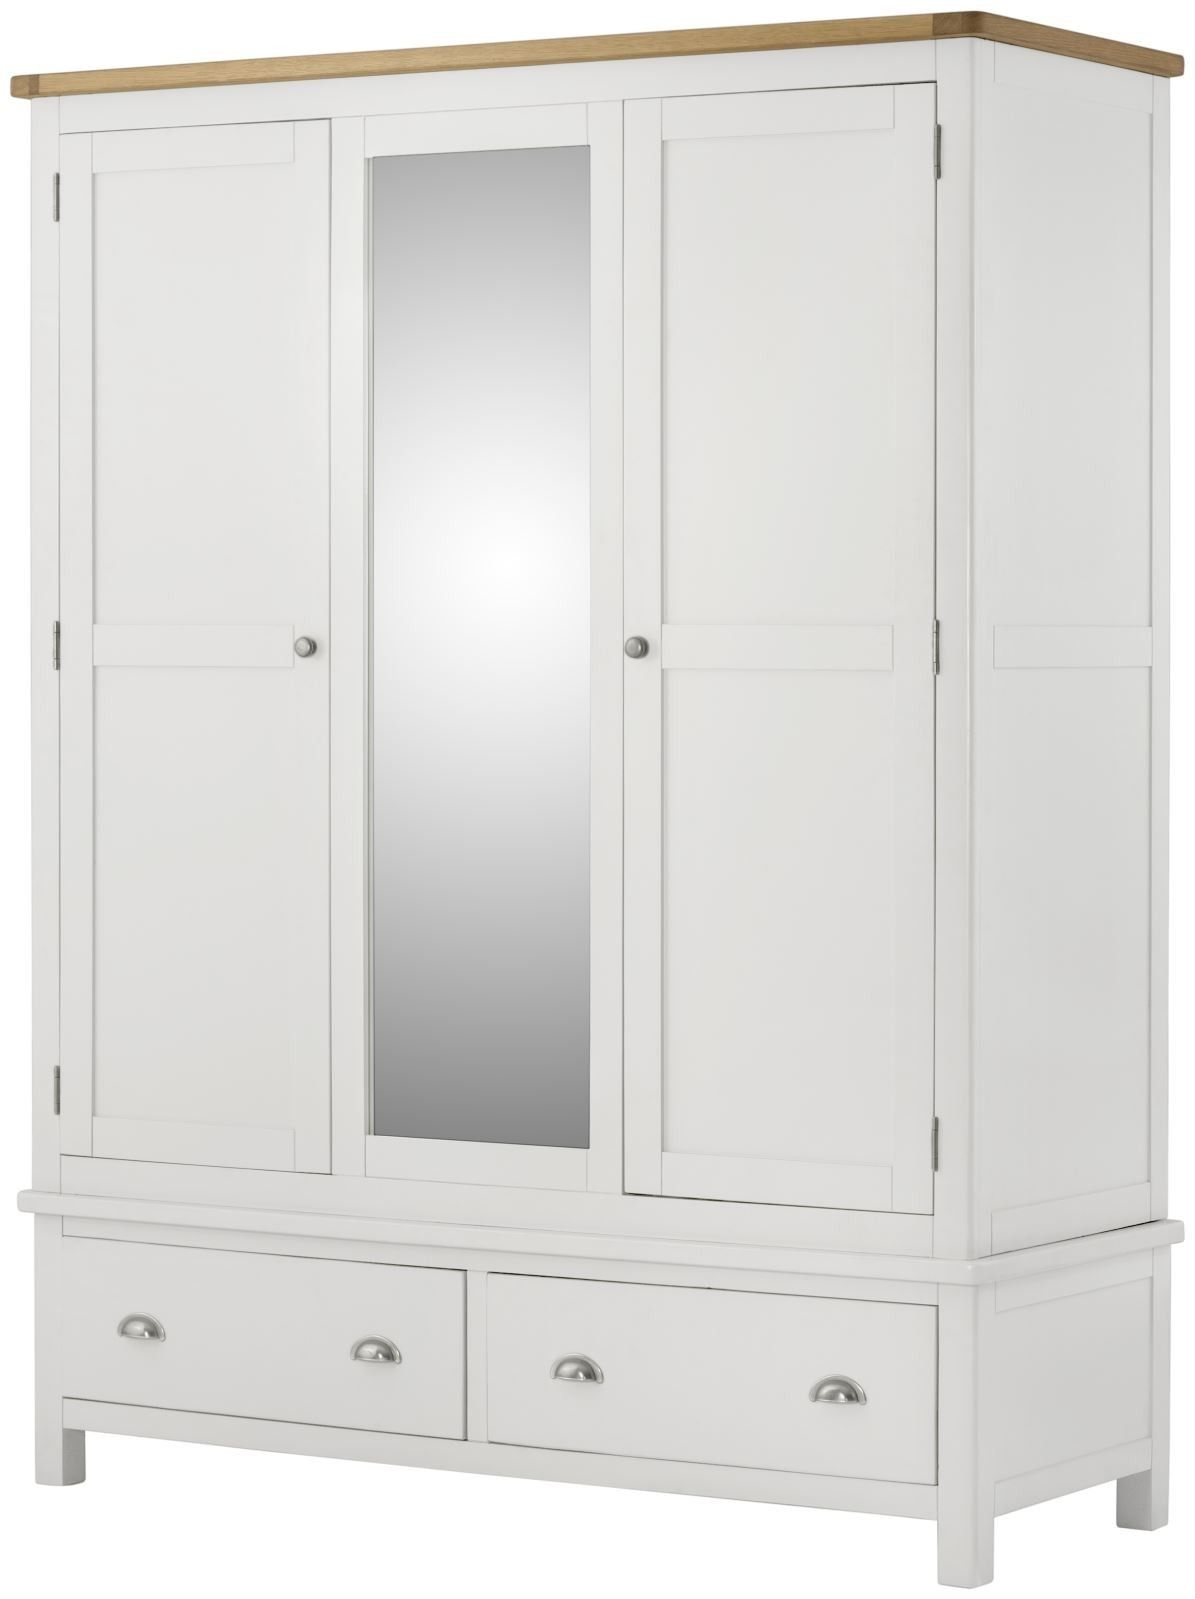 Purbeck Painted Triple Wardrobe - White